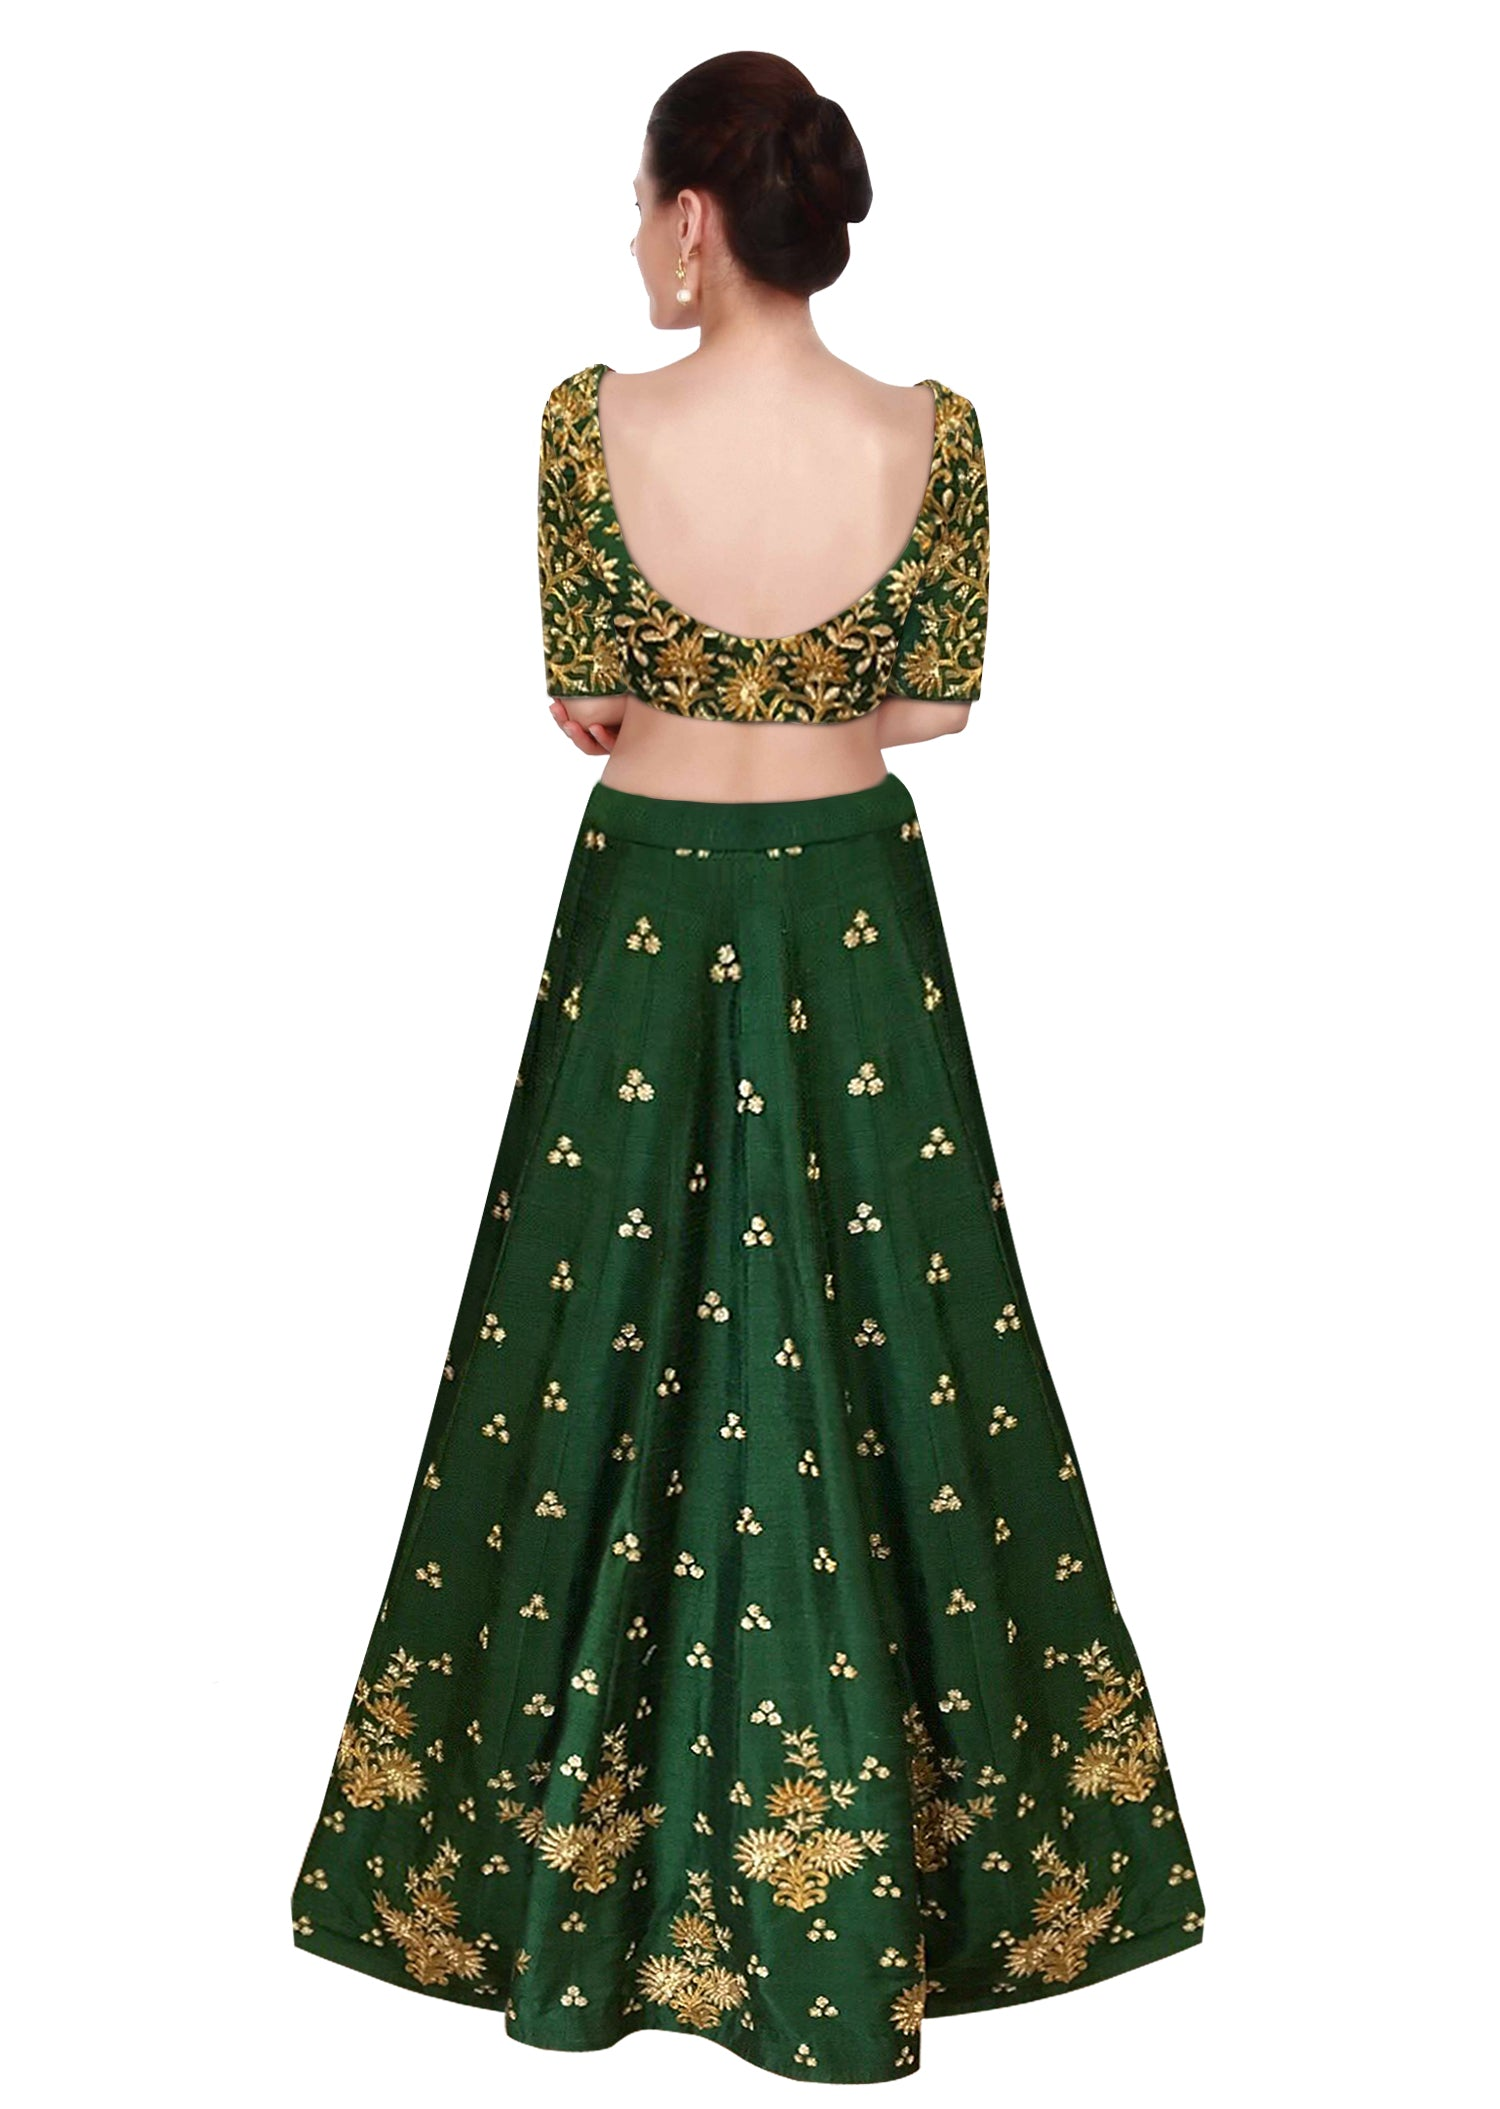 Green Color Lehenga Choli with Beige Dupatta by Panache Haute Couture